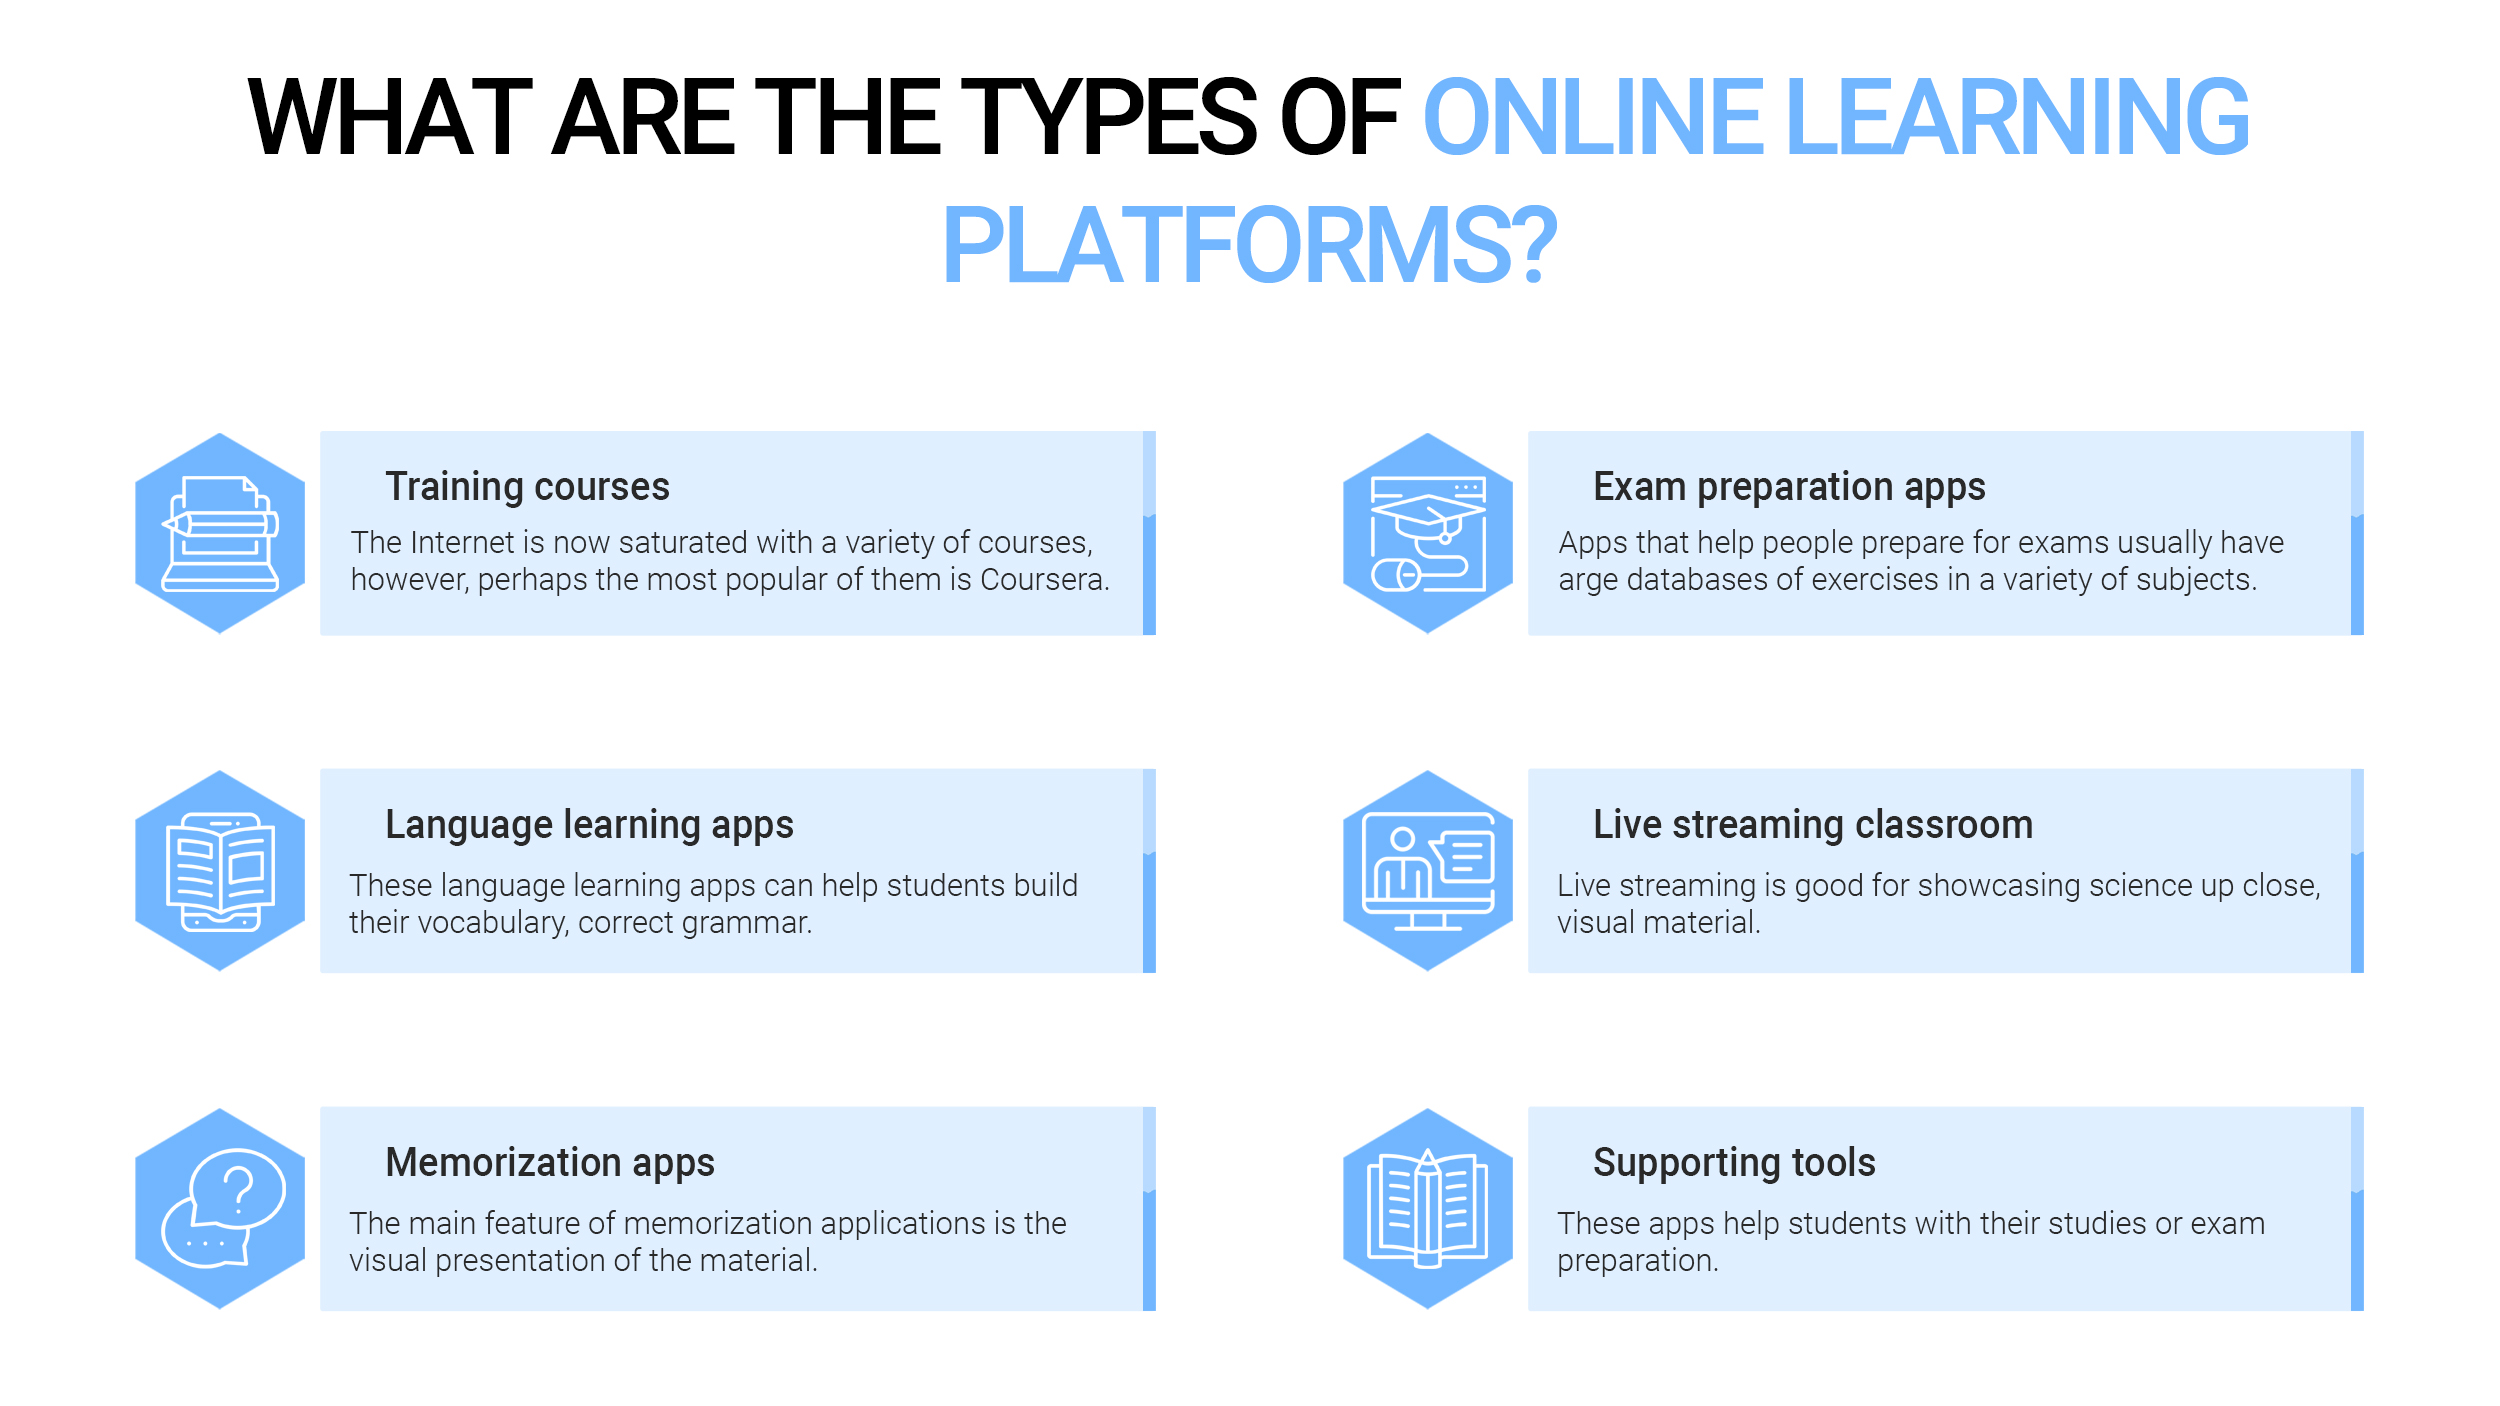 What Are the Types of Online Learning Platforms